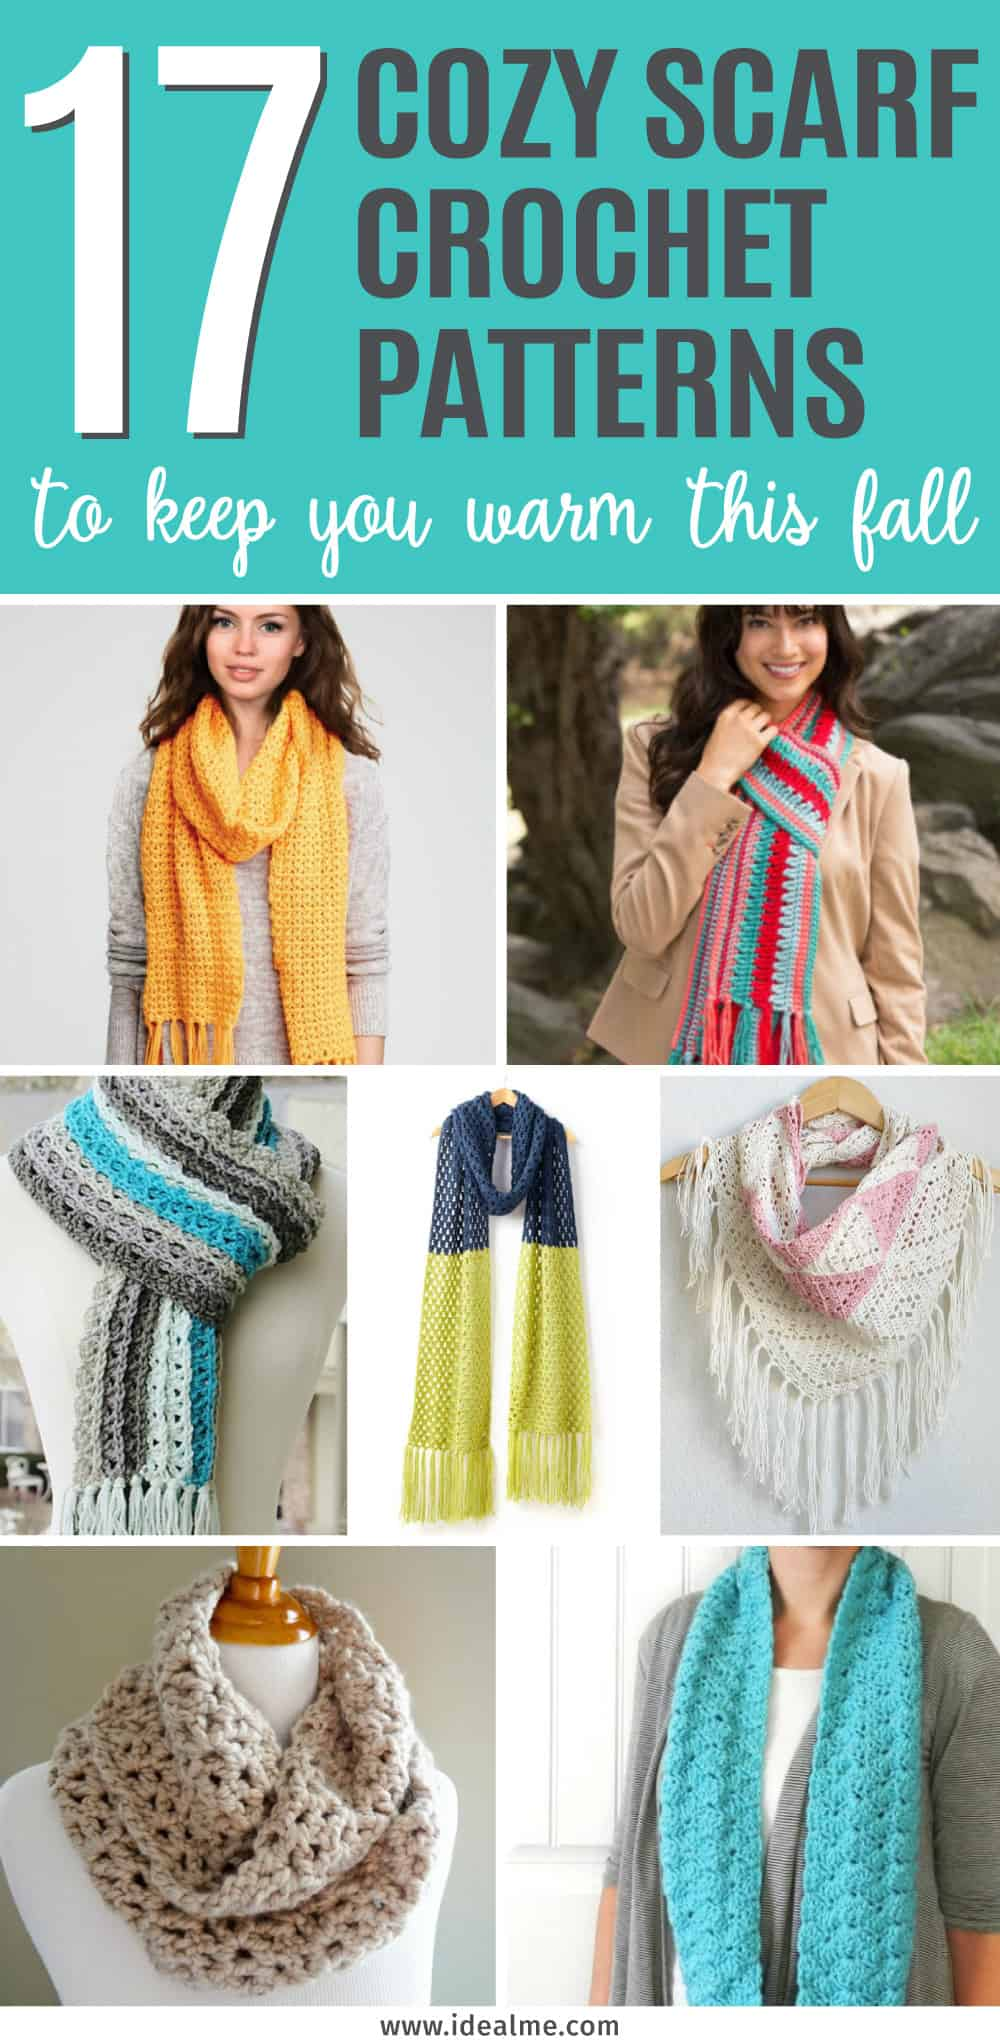 Grab somesoft and cozy yarn. There's something for everyone with these 17 cozy scarf crochet patterns to keep you warm this fall.